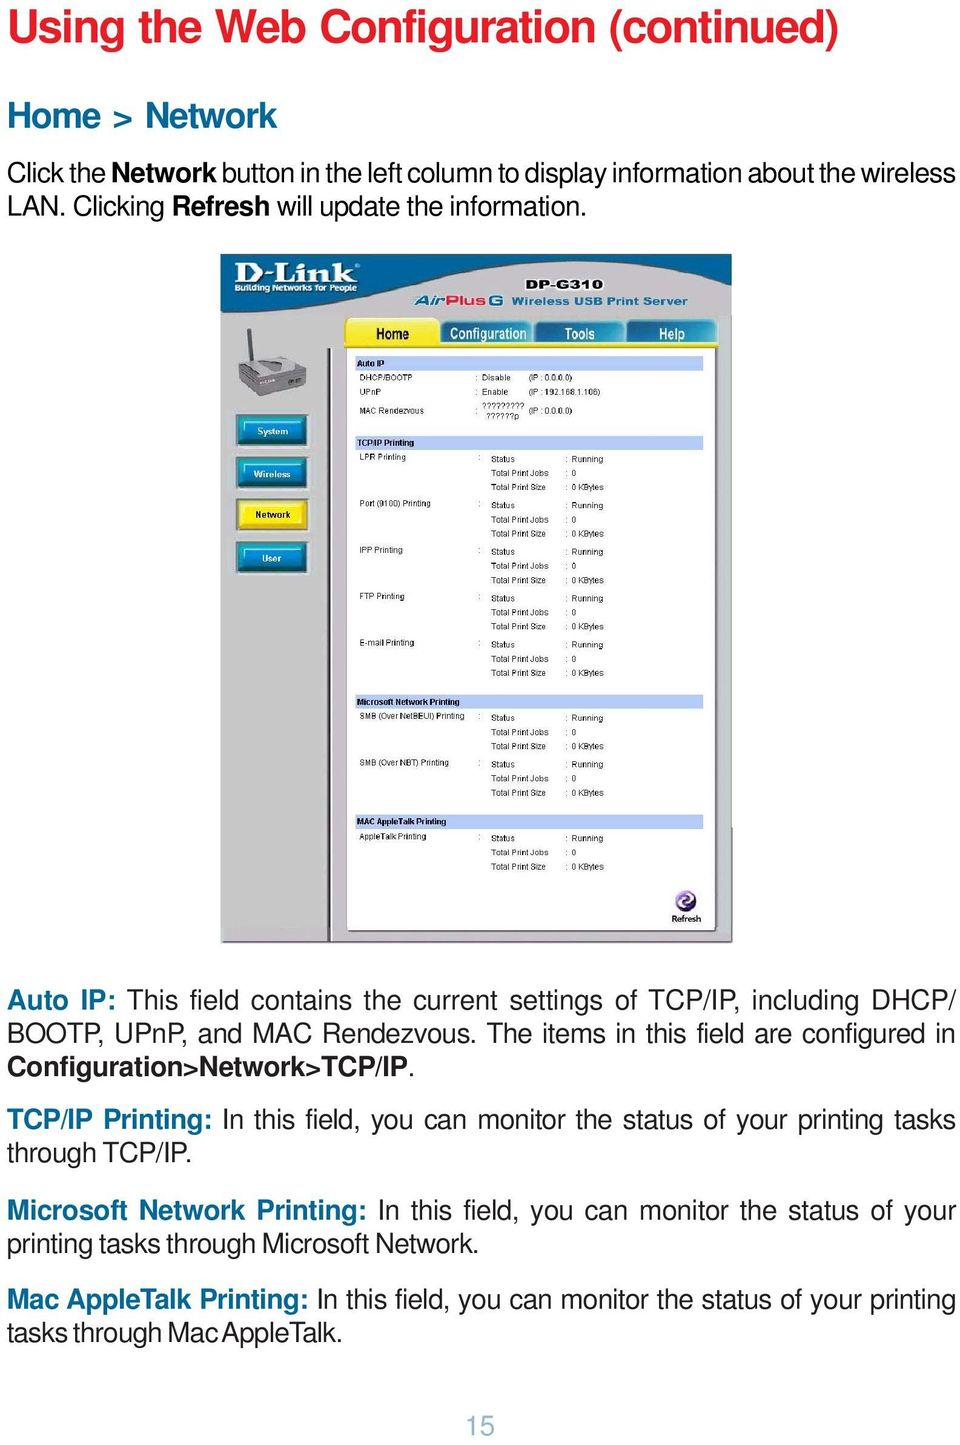 The items in this field are configured in Configuration>Network>TCP/IP. TCP/IP Printing: In this field, you can monitor the status of your printing tasks through TCP/IP.